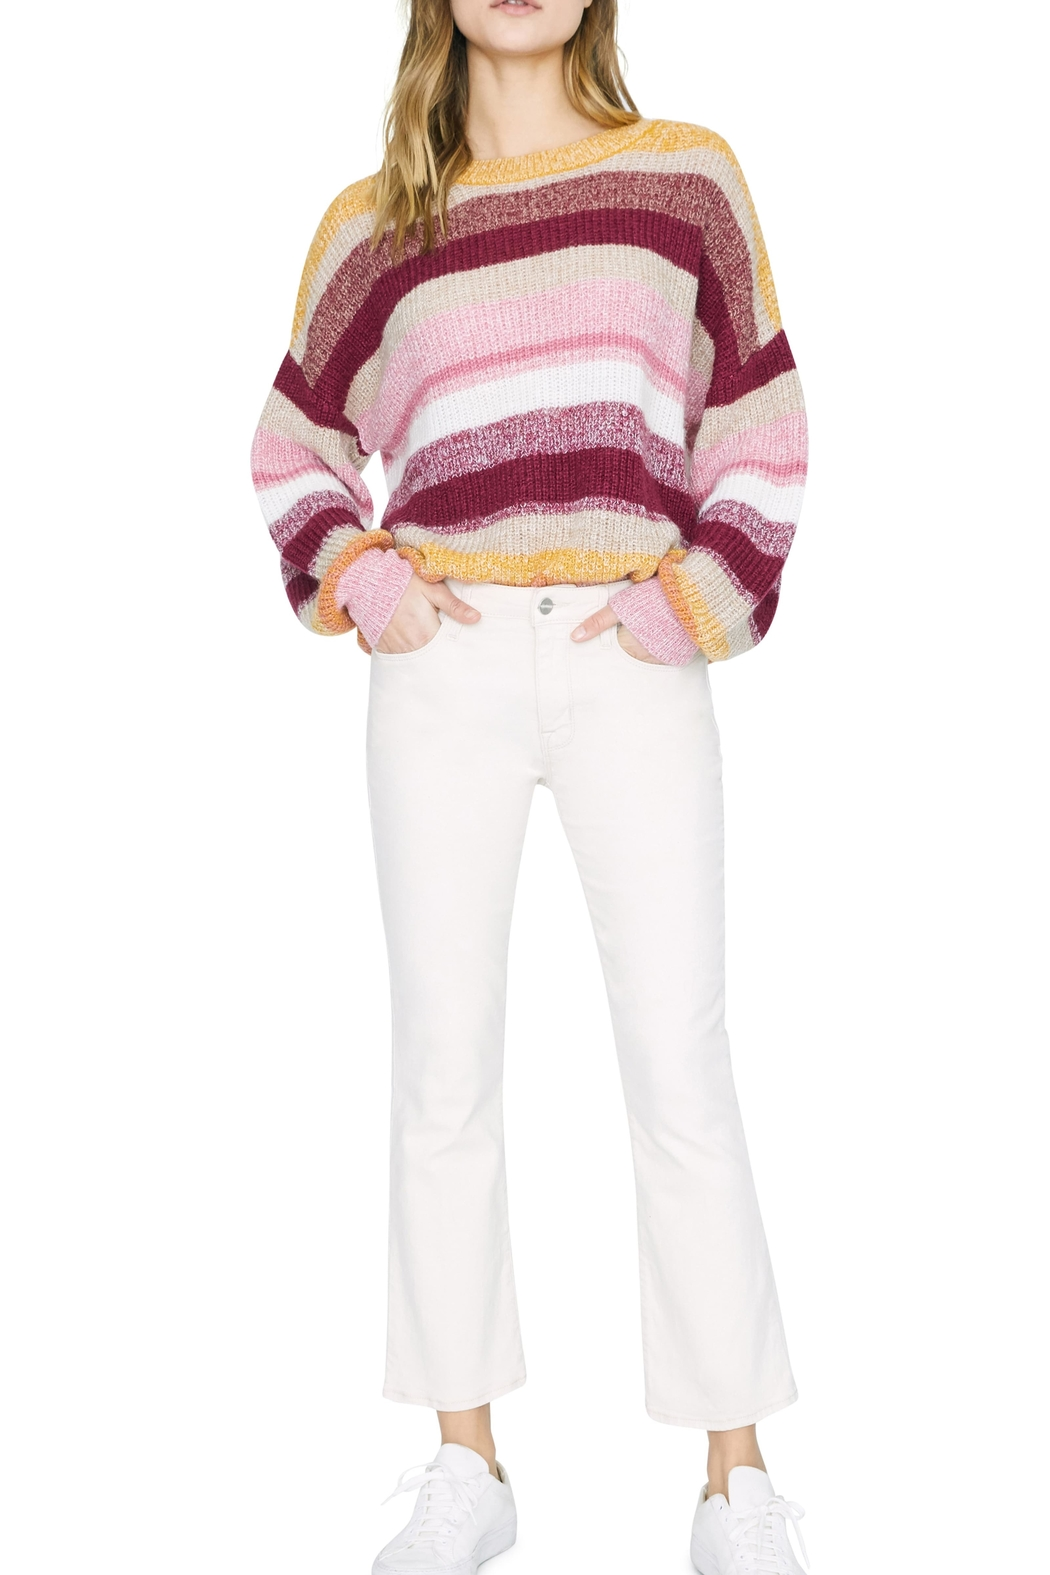 Sanctuary Blurred Lines Sweater - Side Cropped Image